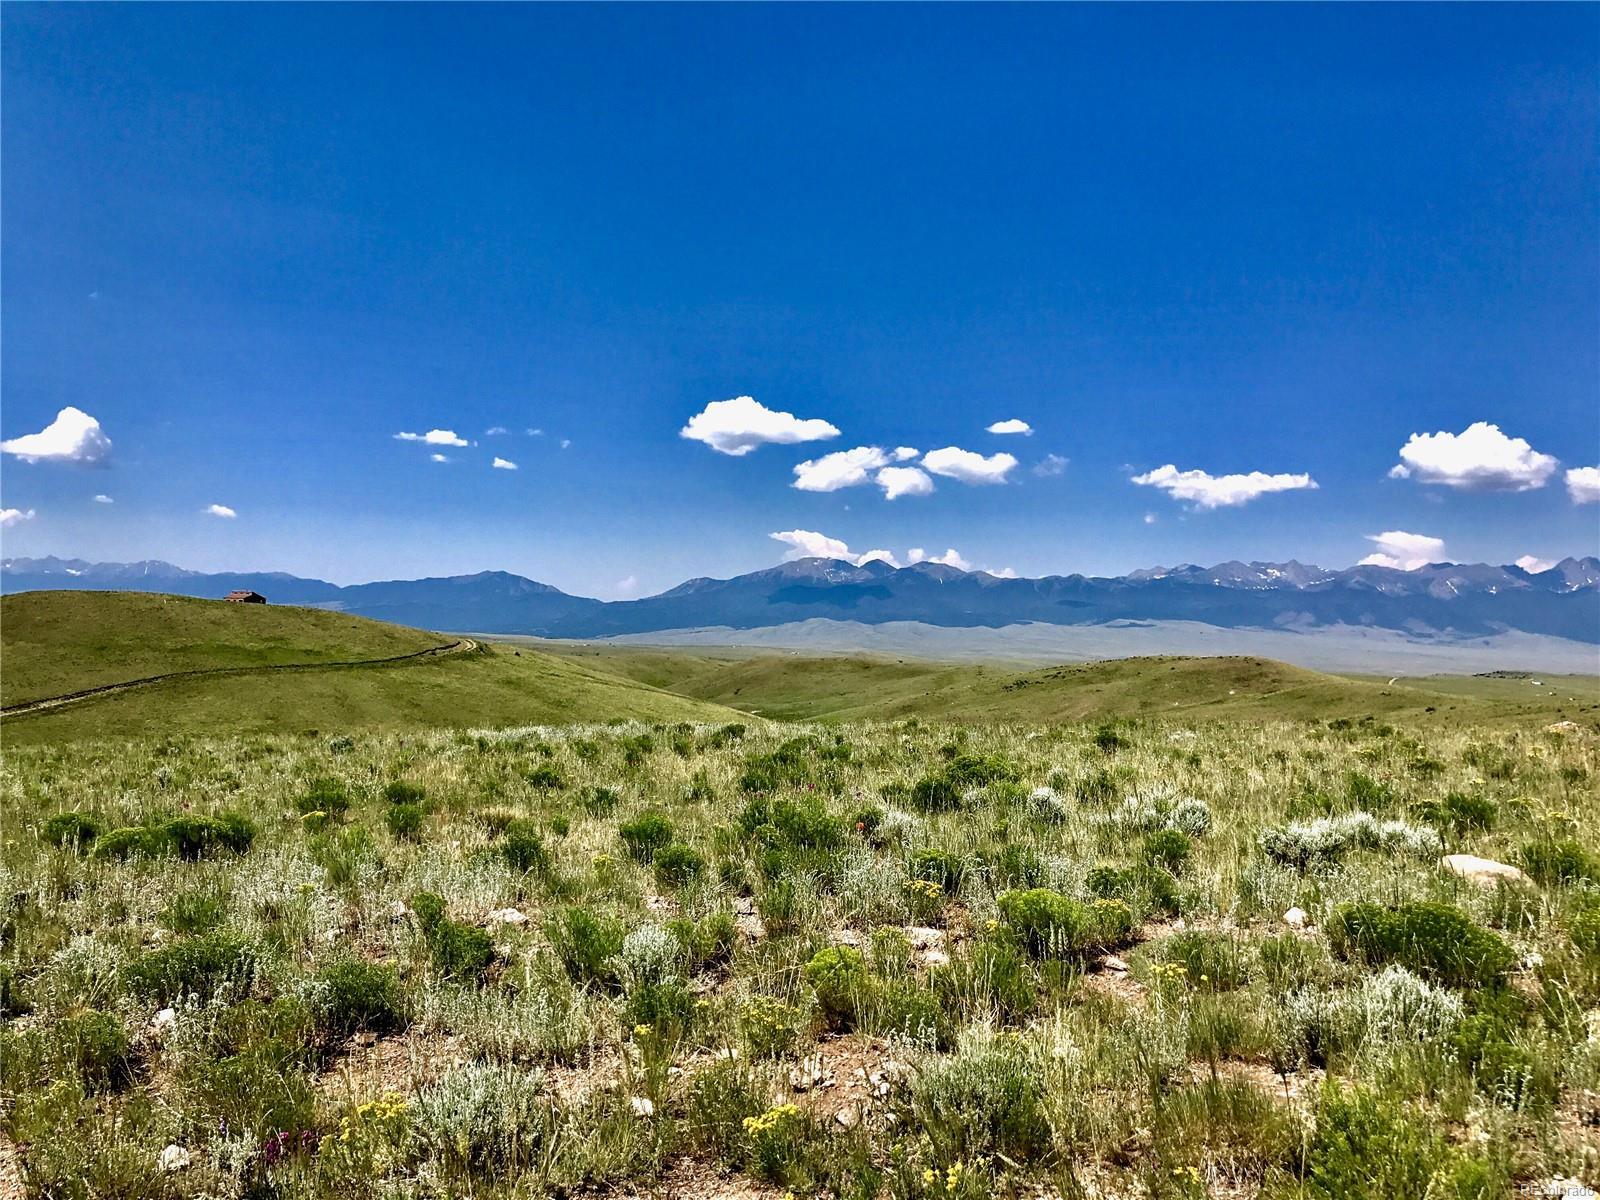 0 Gibbs Drive, Westcliffe, CO 81252 - Westcliffe, CO real estate listing